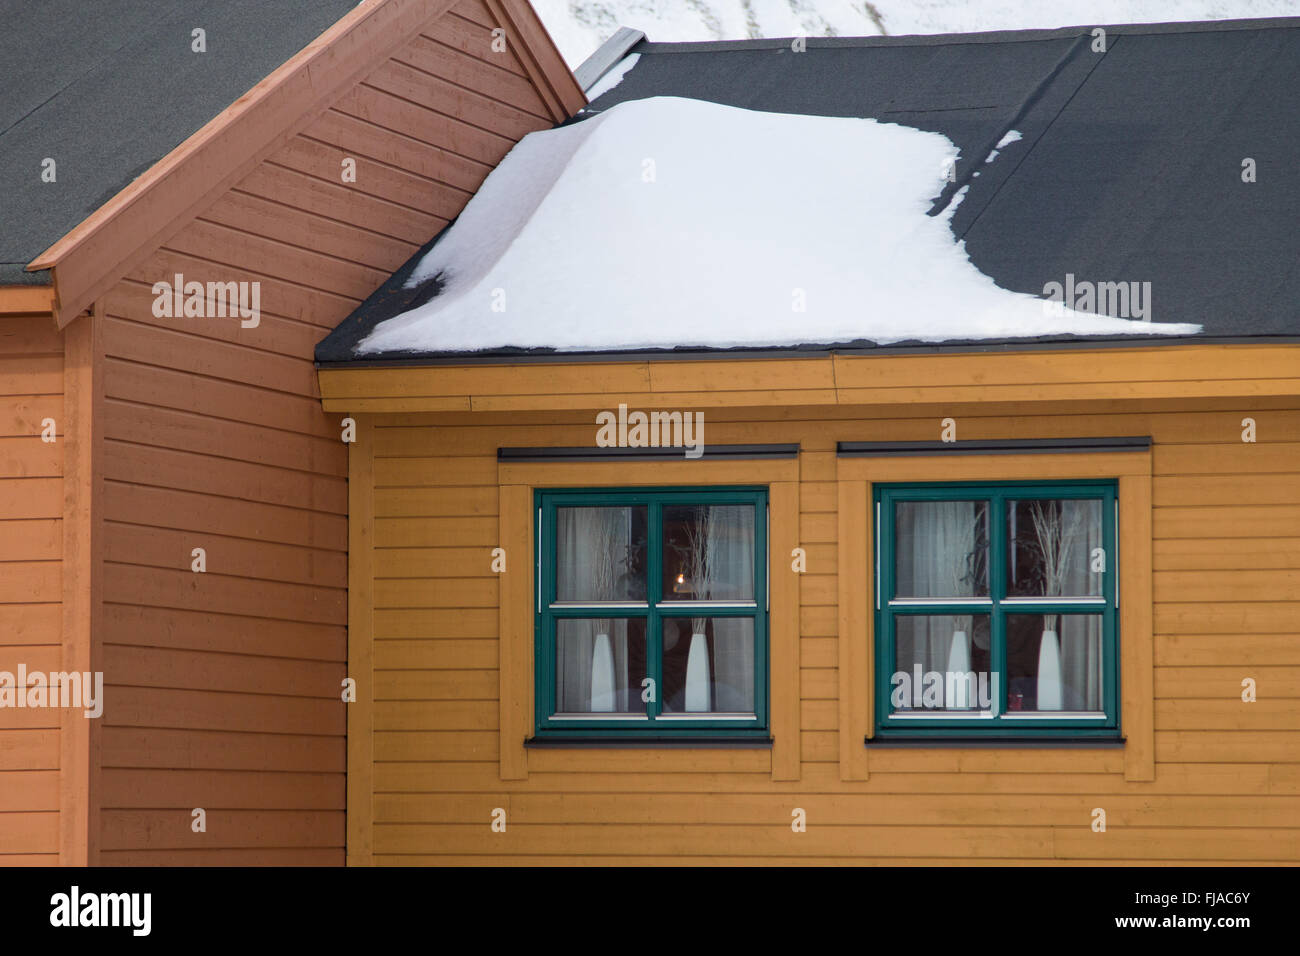 House in the town of Longyearbyen - the most Northern settlement in the world. Spitsbergen (Svalbard). Norway. - Stock Image